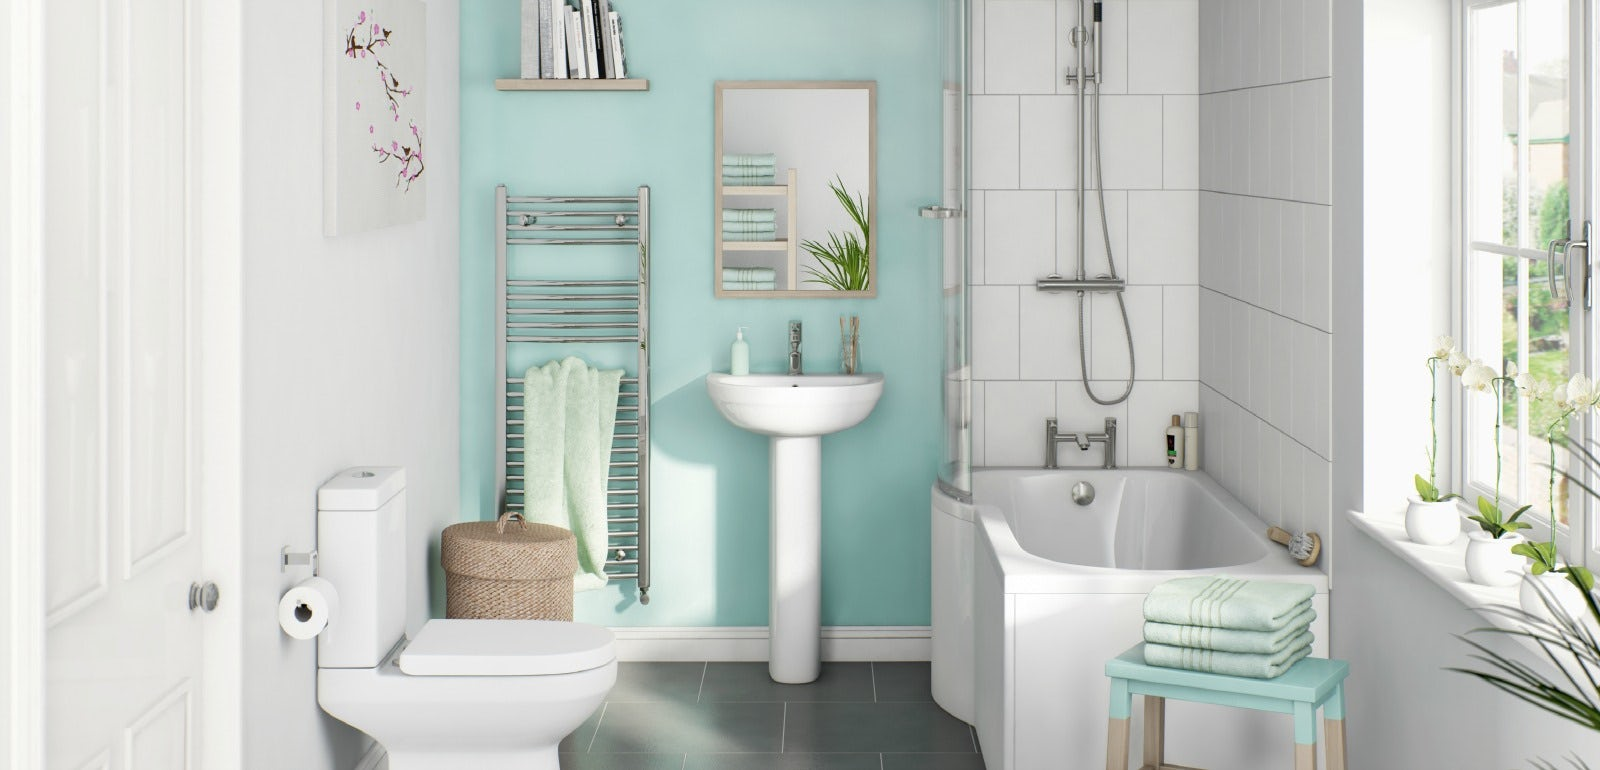 How to create a family friendly bathroom for Small family bathroom design